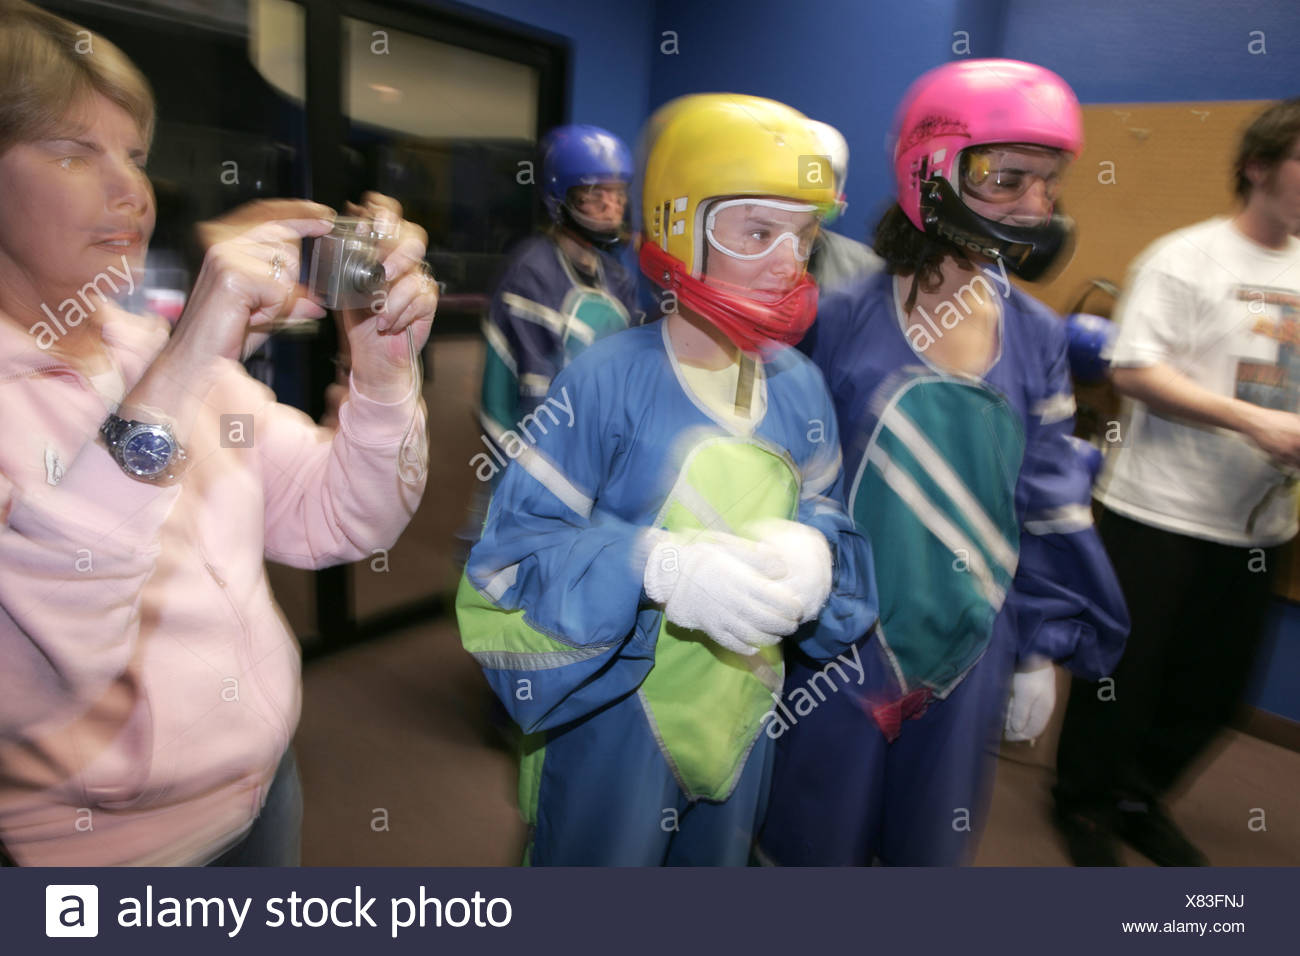 Young participants ready for an indoor skydiving flight